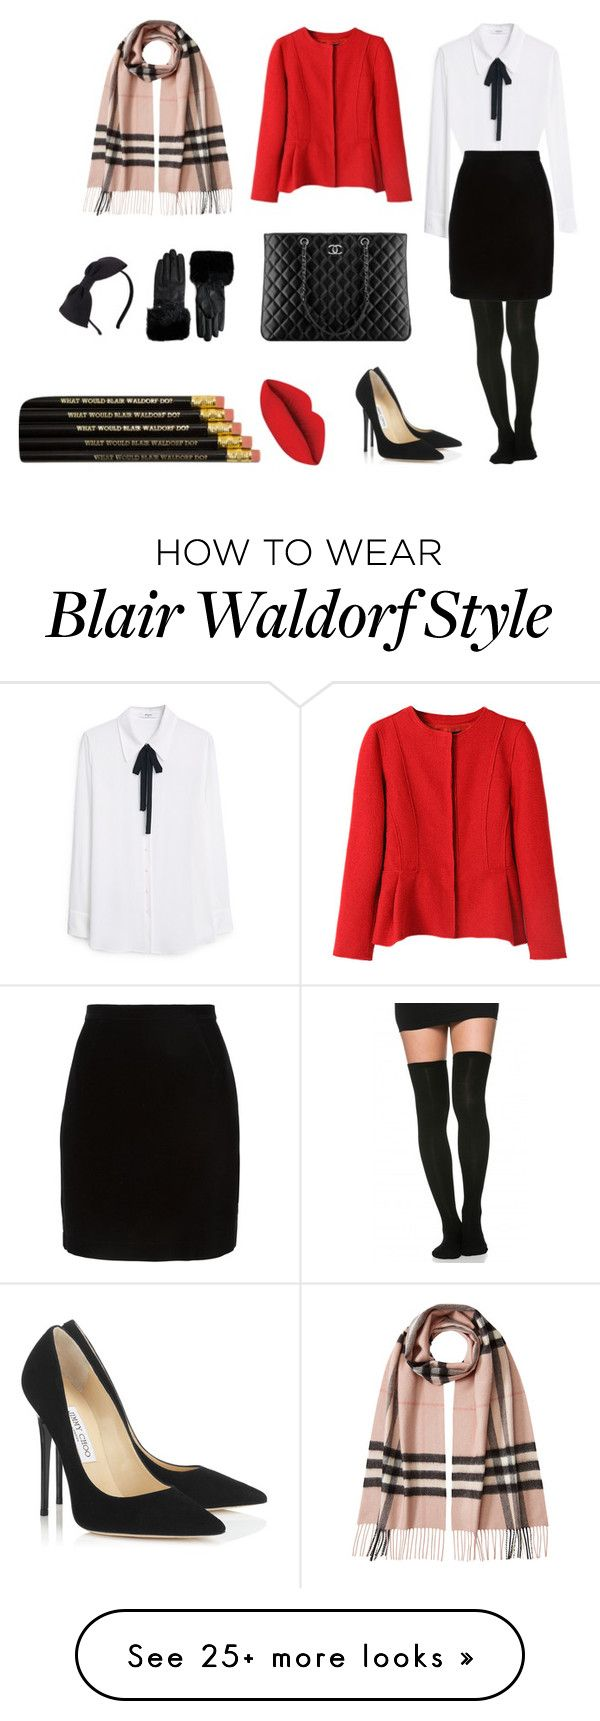 """Blair waldorf"" by shshshshshshshsh on Polyvore featuring Mode, MANGO, Jimmy Choo, Thierry Mugler, Chanel, Burberry, Ted Baker, Kate Spade, women's clothing und women's fashion"